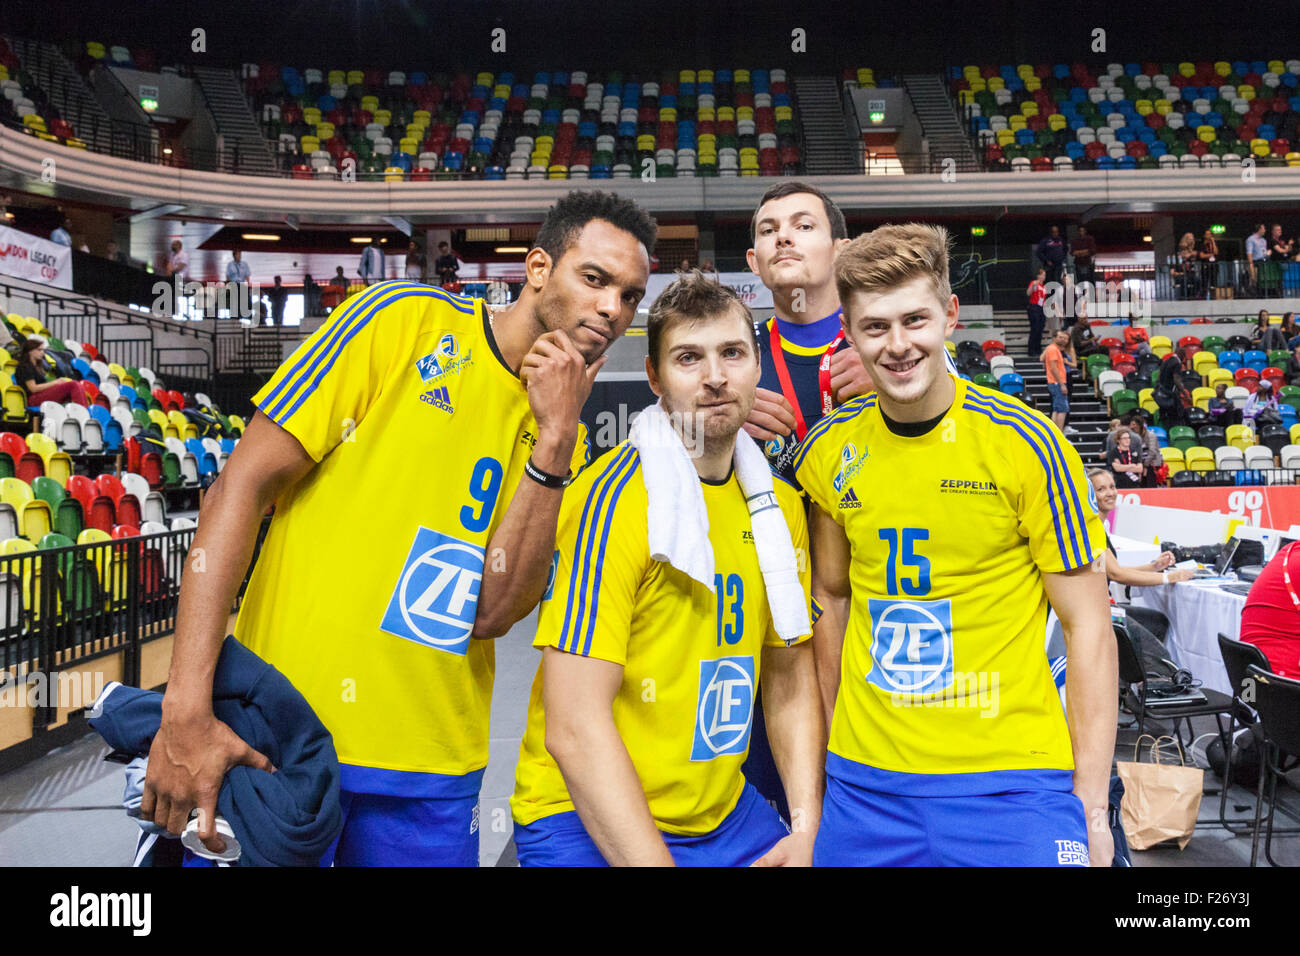 Copper Box Arena, London, UK. 12th Sep. 2015. VfB's Marc Anthony Honore (9), Adrian Gontariu (13) and Robert - Stock Image